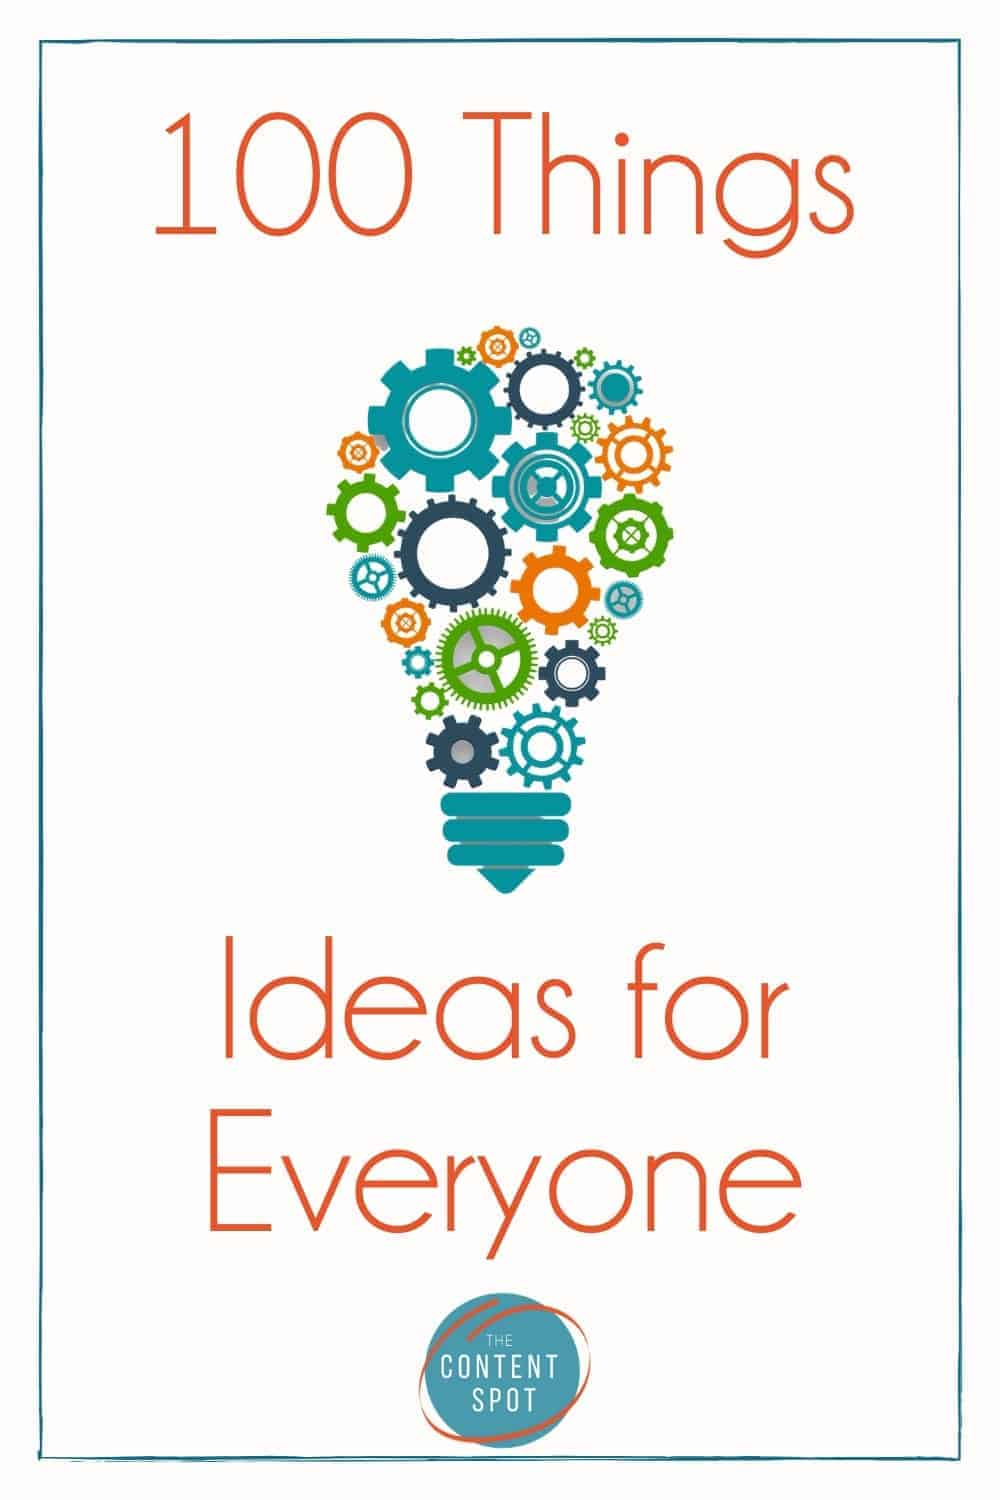 100 things ideas for everyone